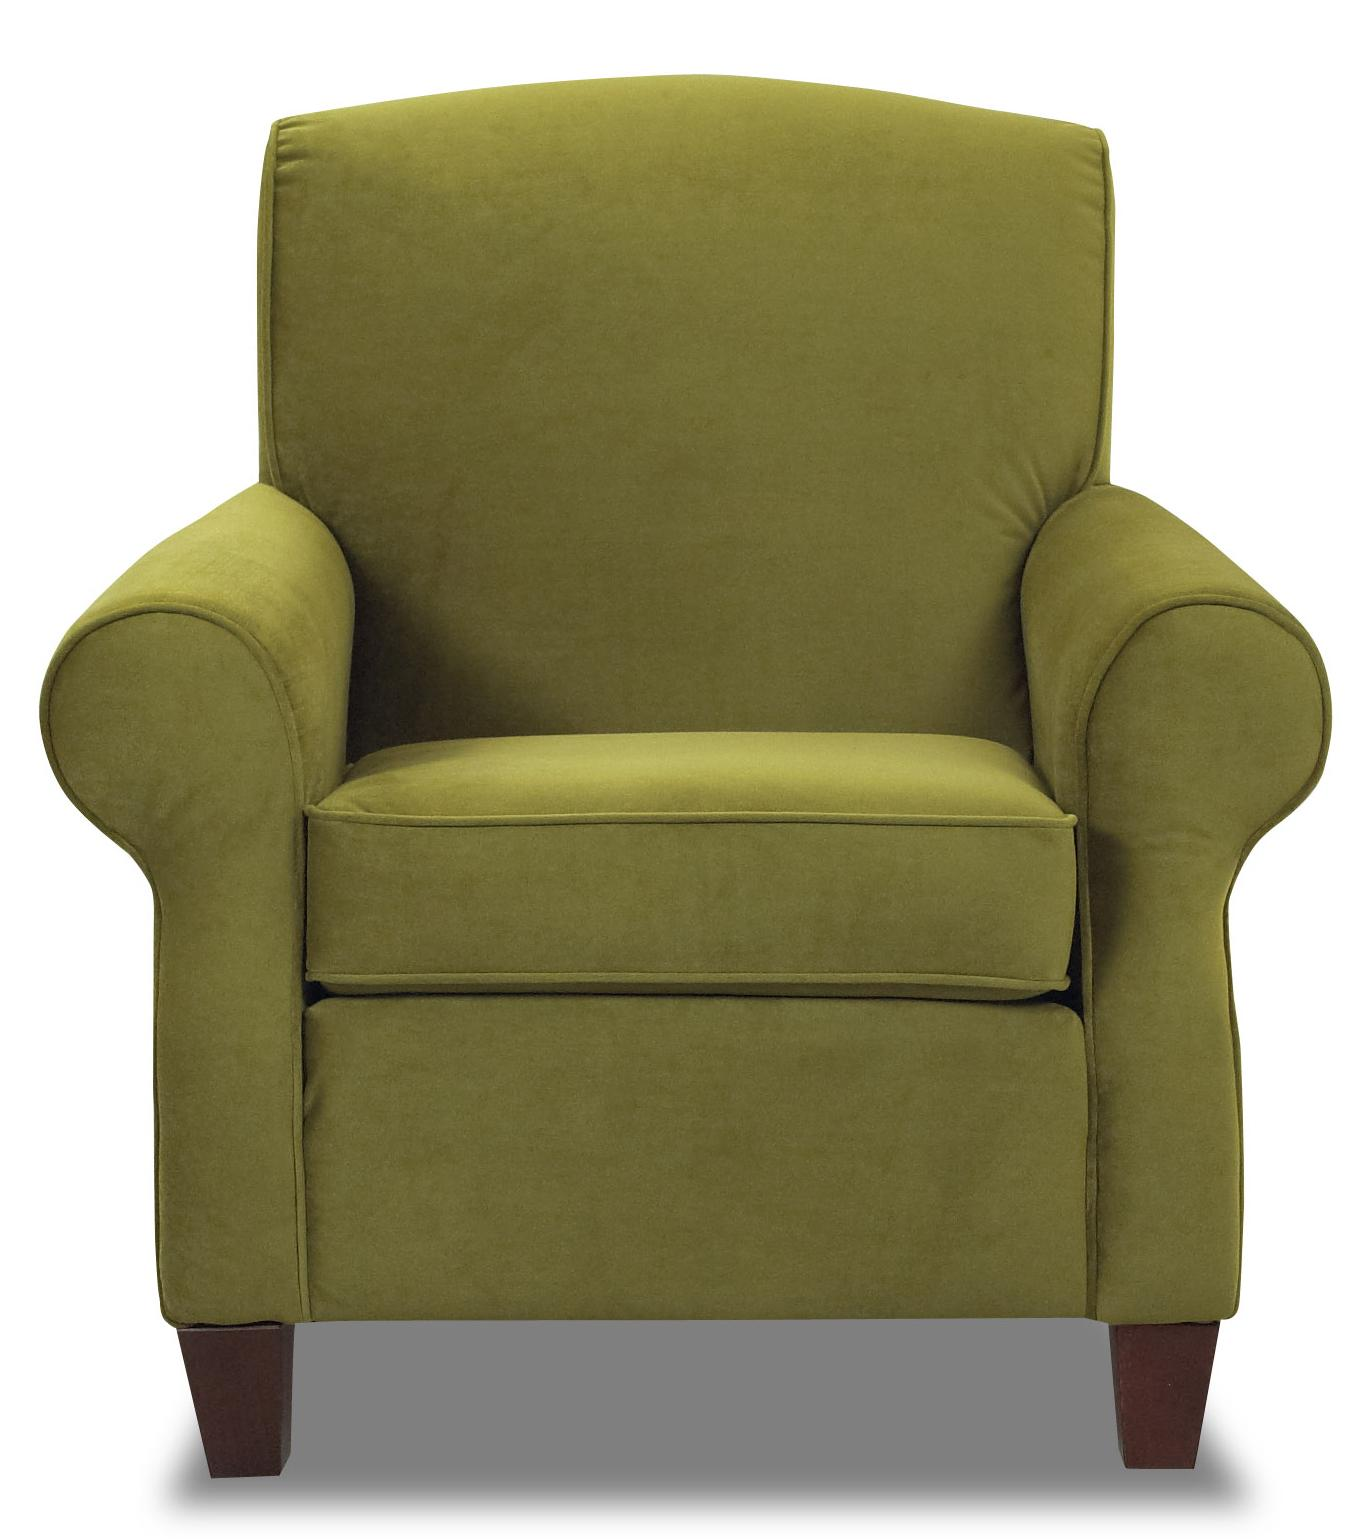 Klaussner Chairs and Accents Marie Accent Chair - Item Number: K190 C